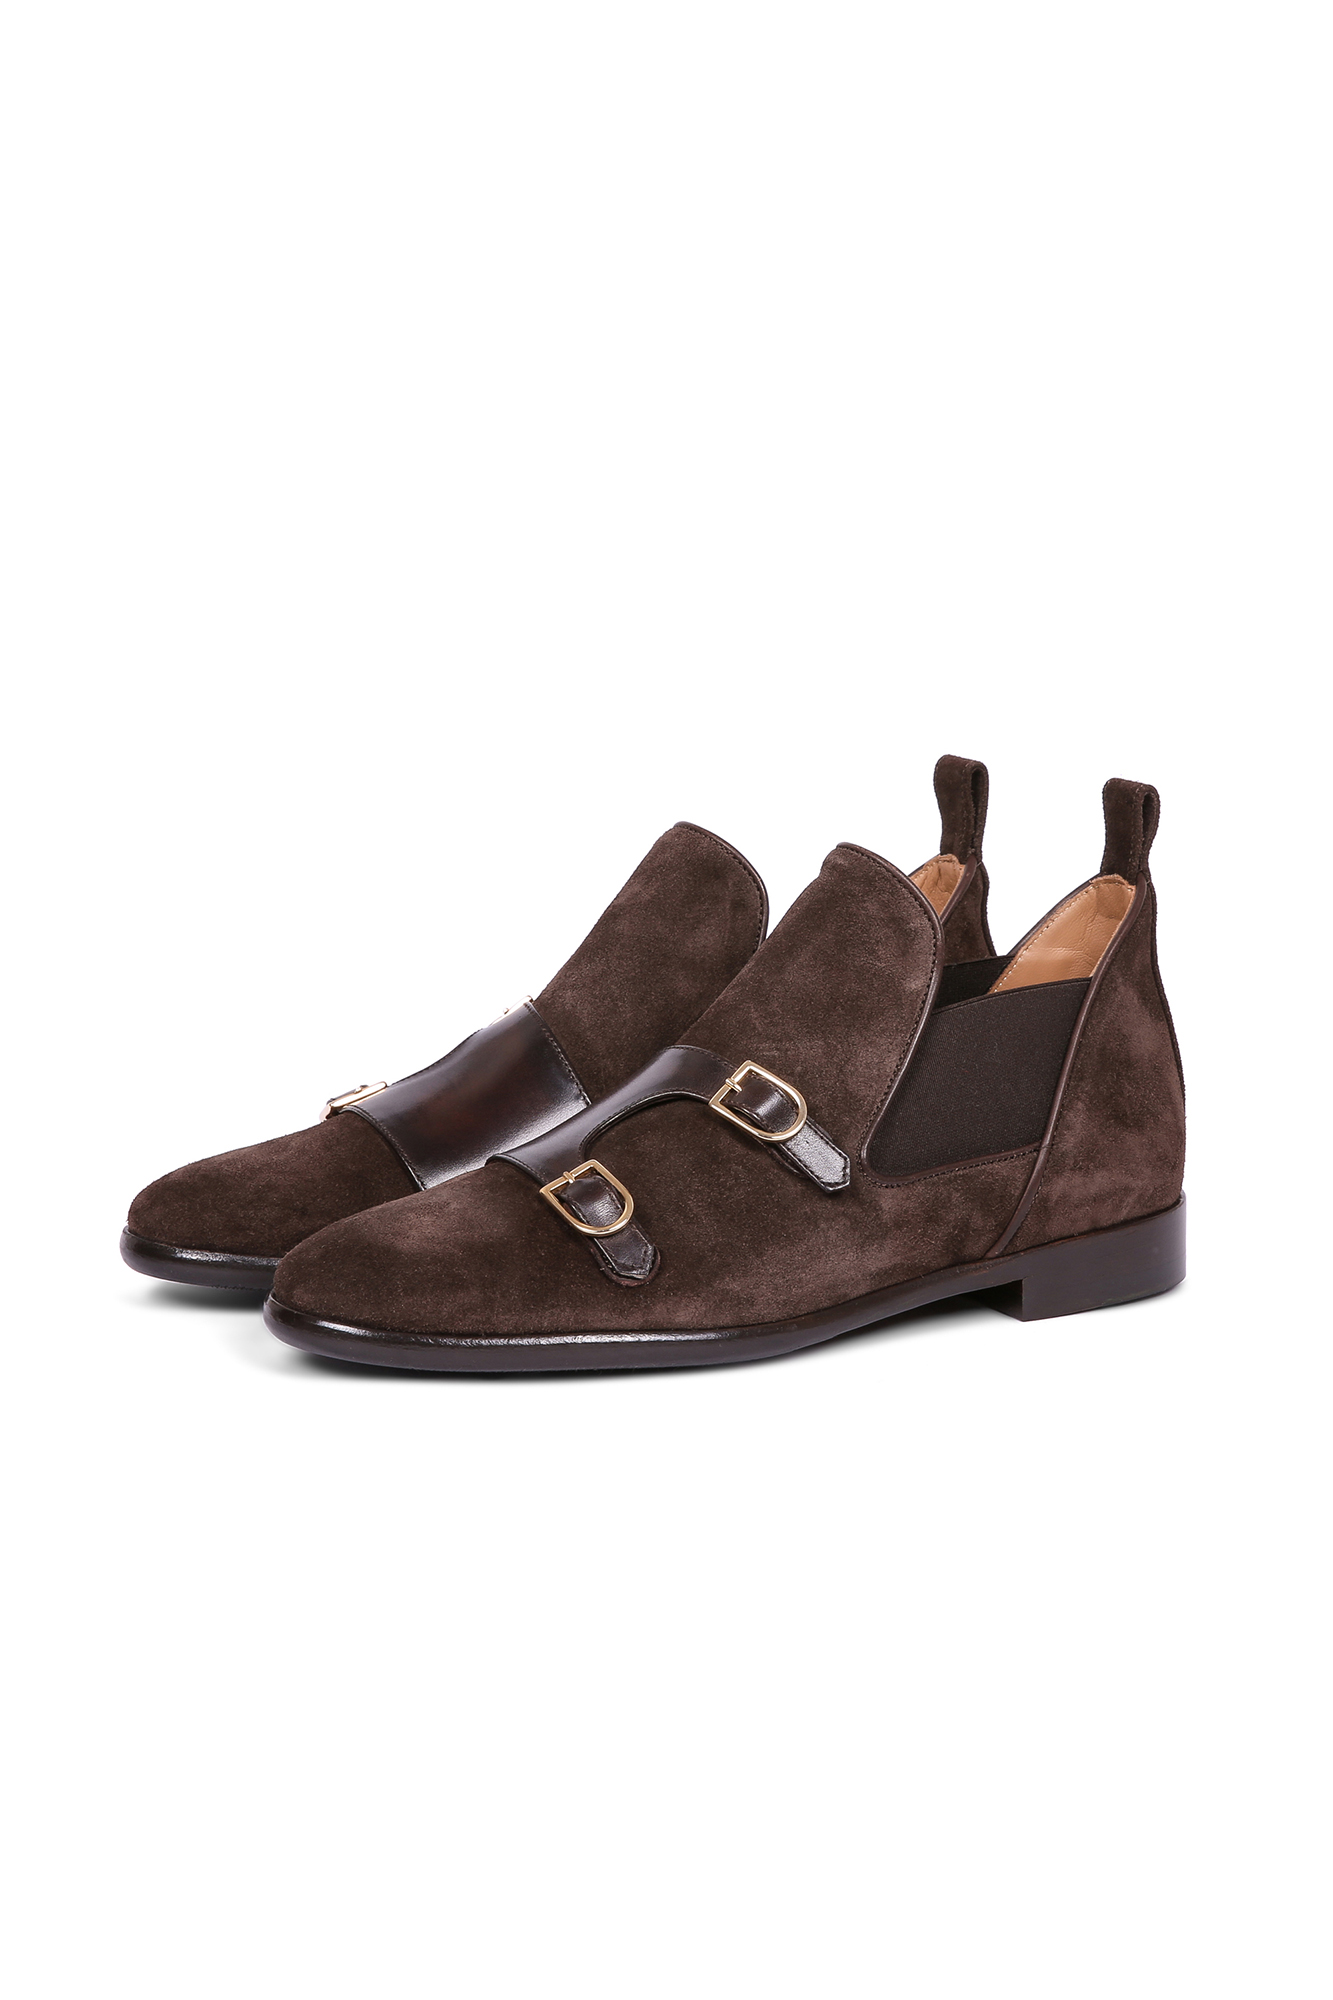 /b/e/belgravia_high_hand_painted_leather_suede_brown.jpg